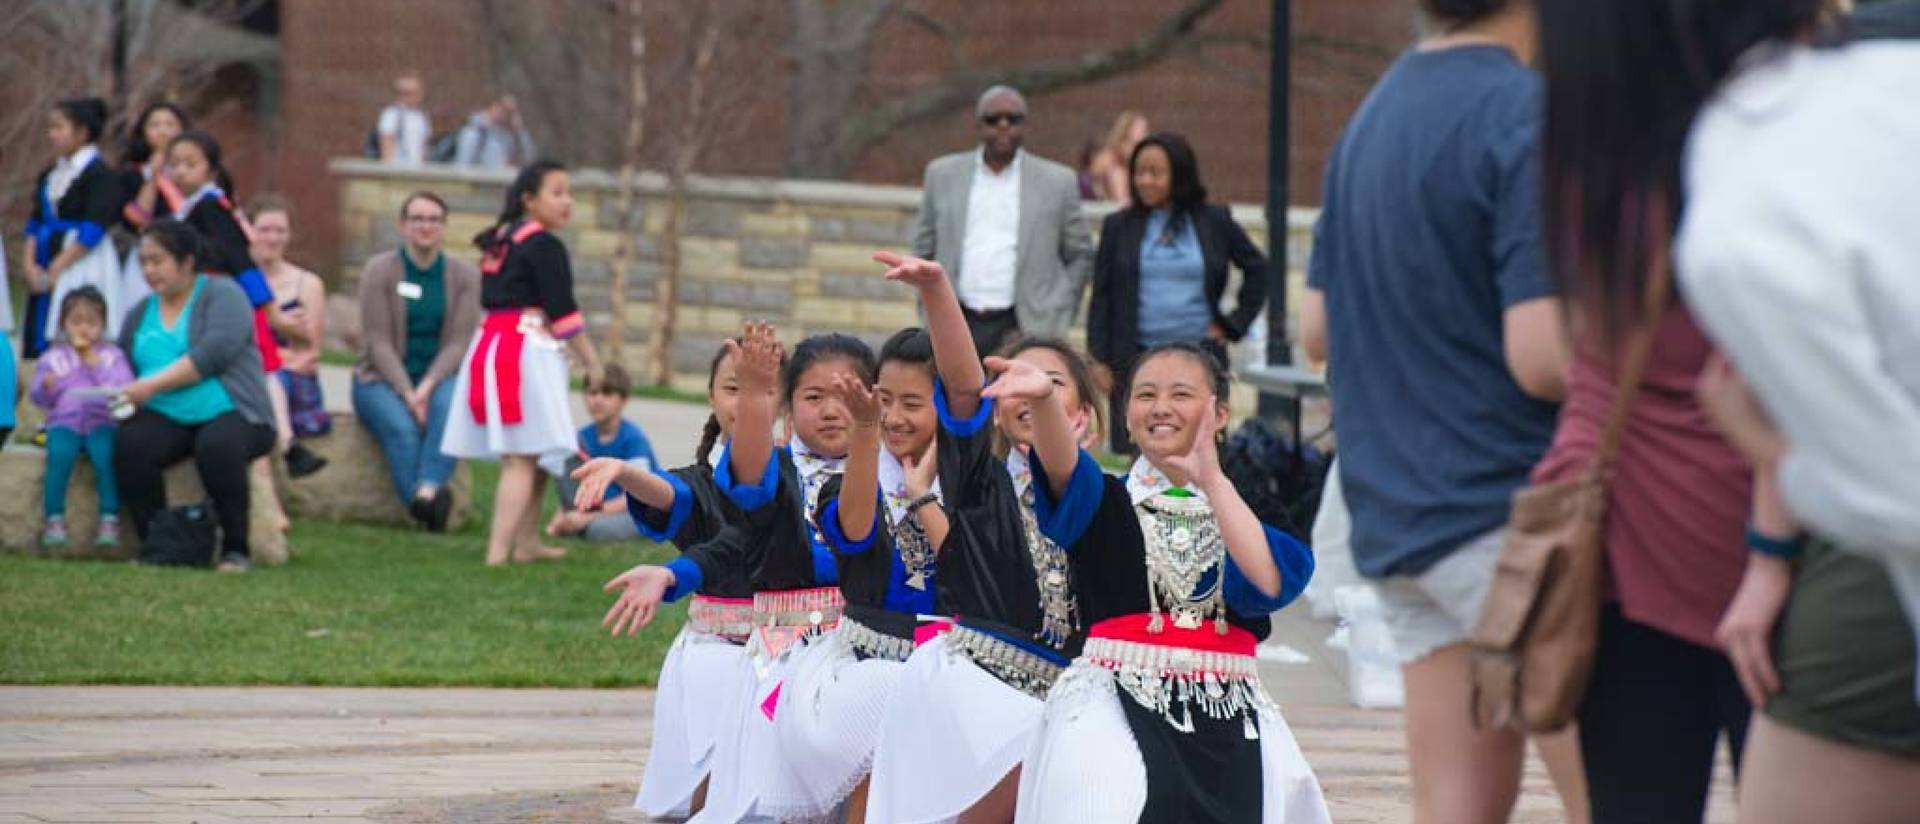 Dancing on the campus mall for Asian Pacific Islander heritage month celebrations